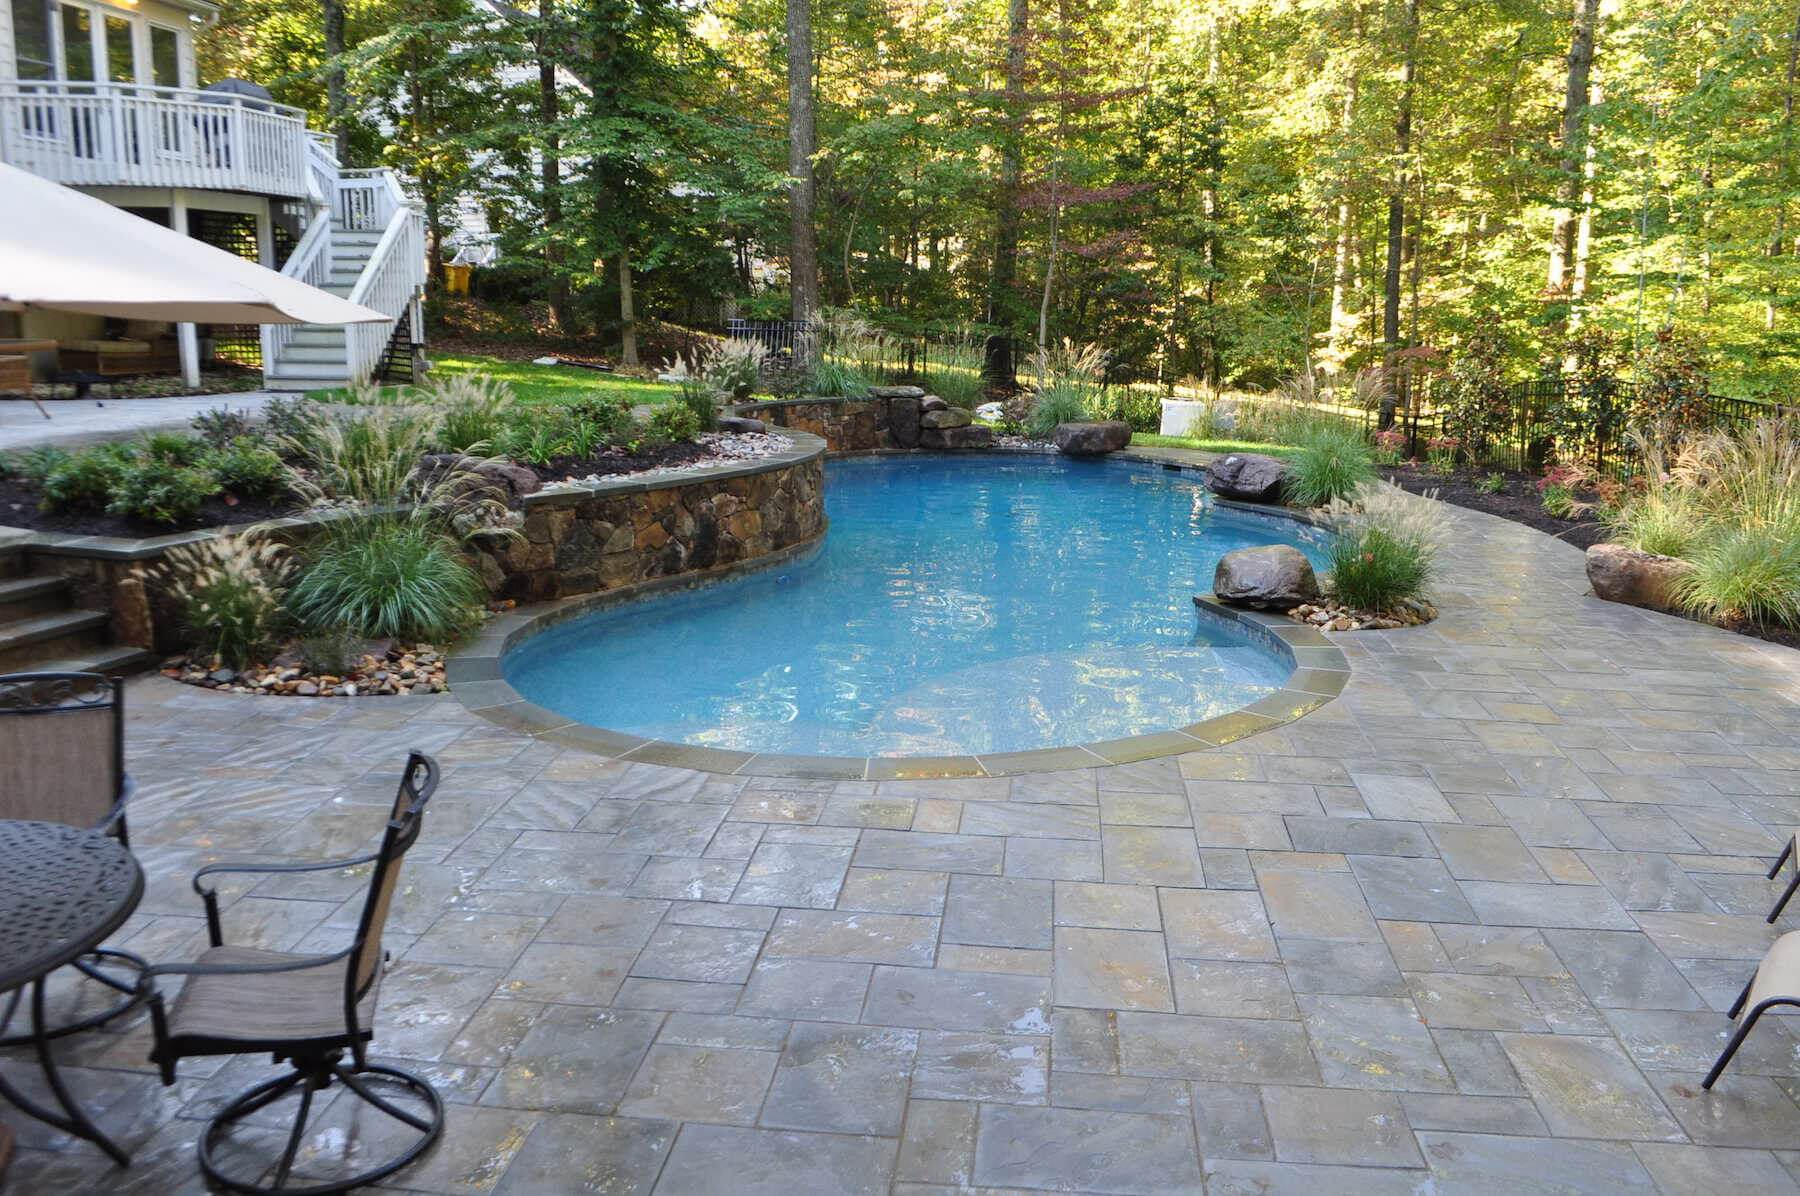 Freeform Pool Paver Deck Annapolis, Maryland